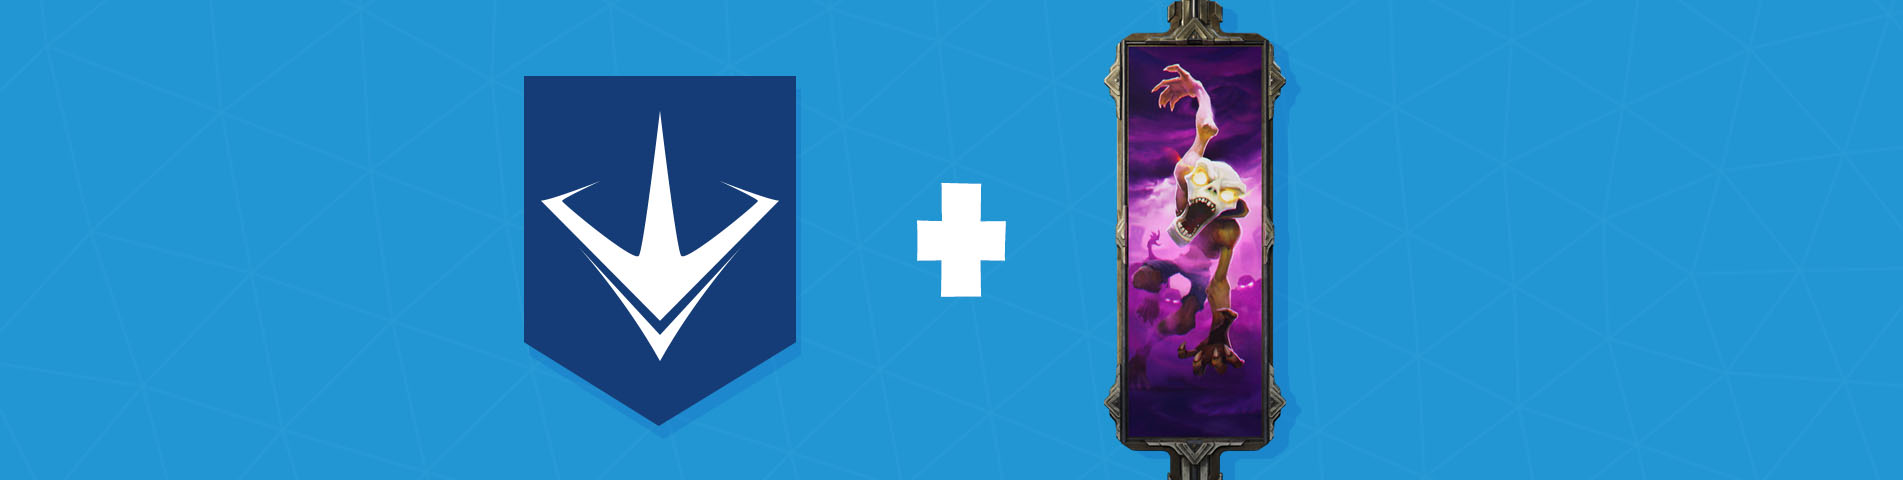 Buy A Fortnite Founder's Pack, Get an Exclusive Paragon Banner!